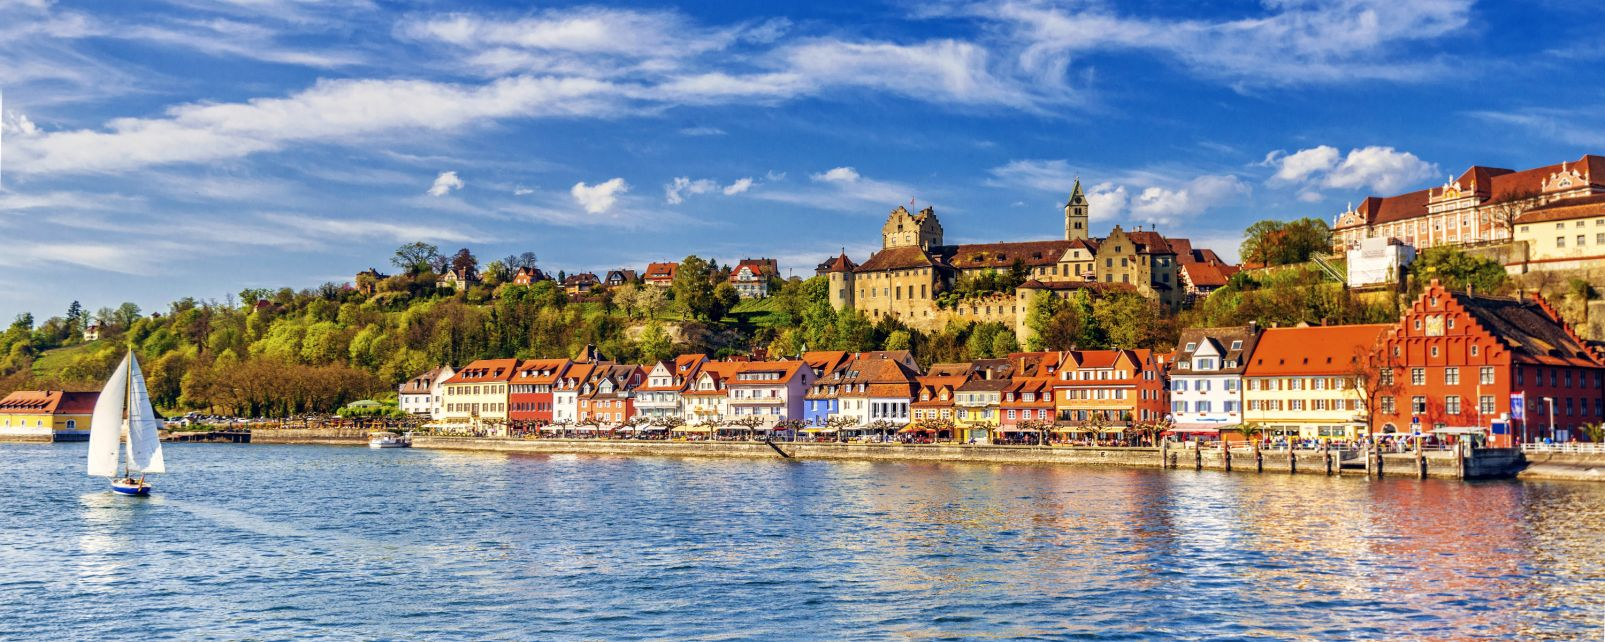 Constance Germany  city images : Lake Constance Germany